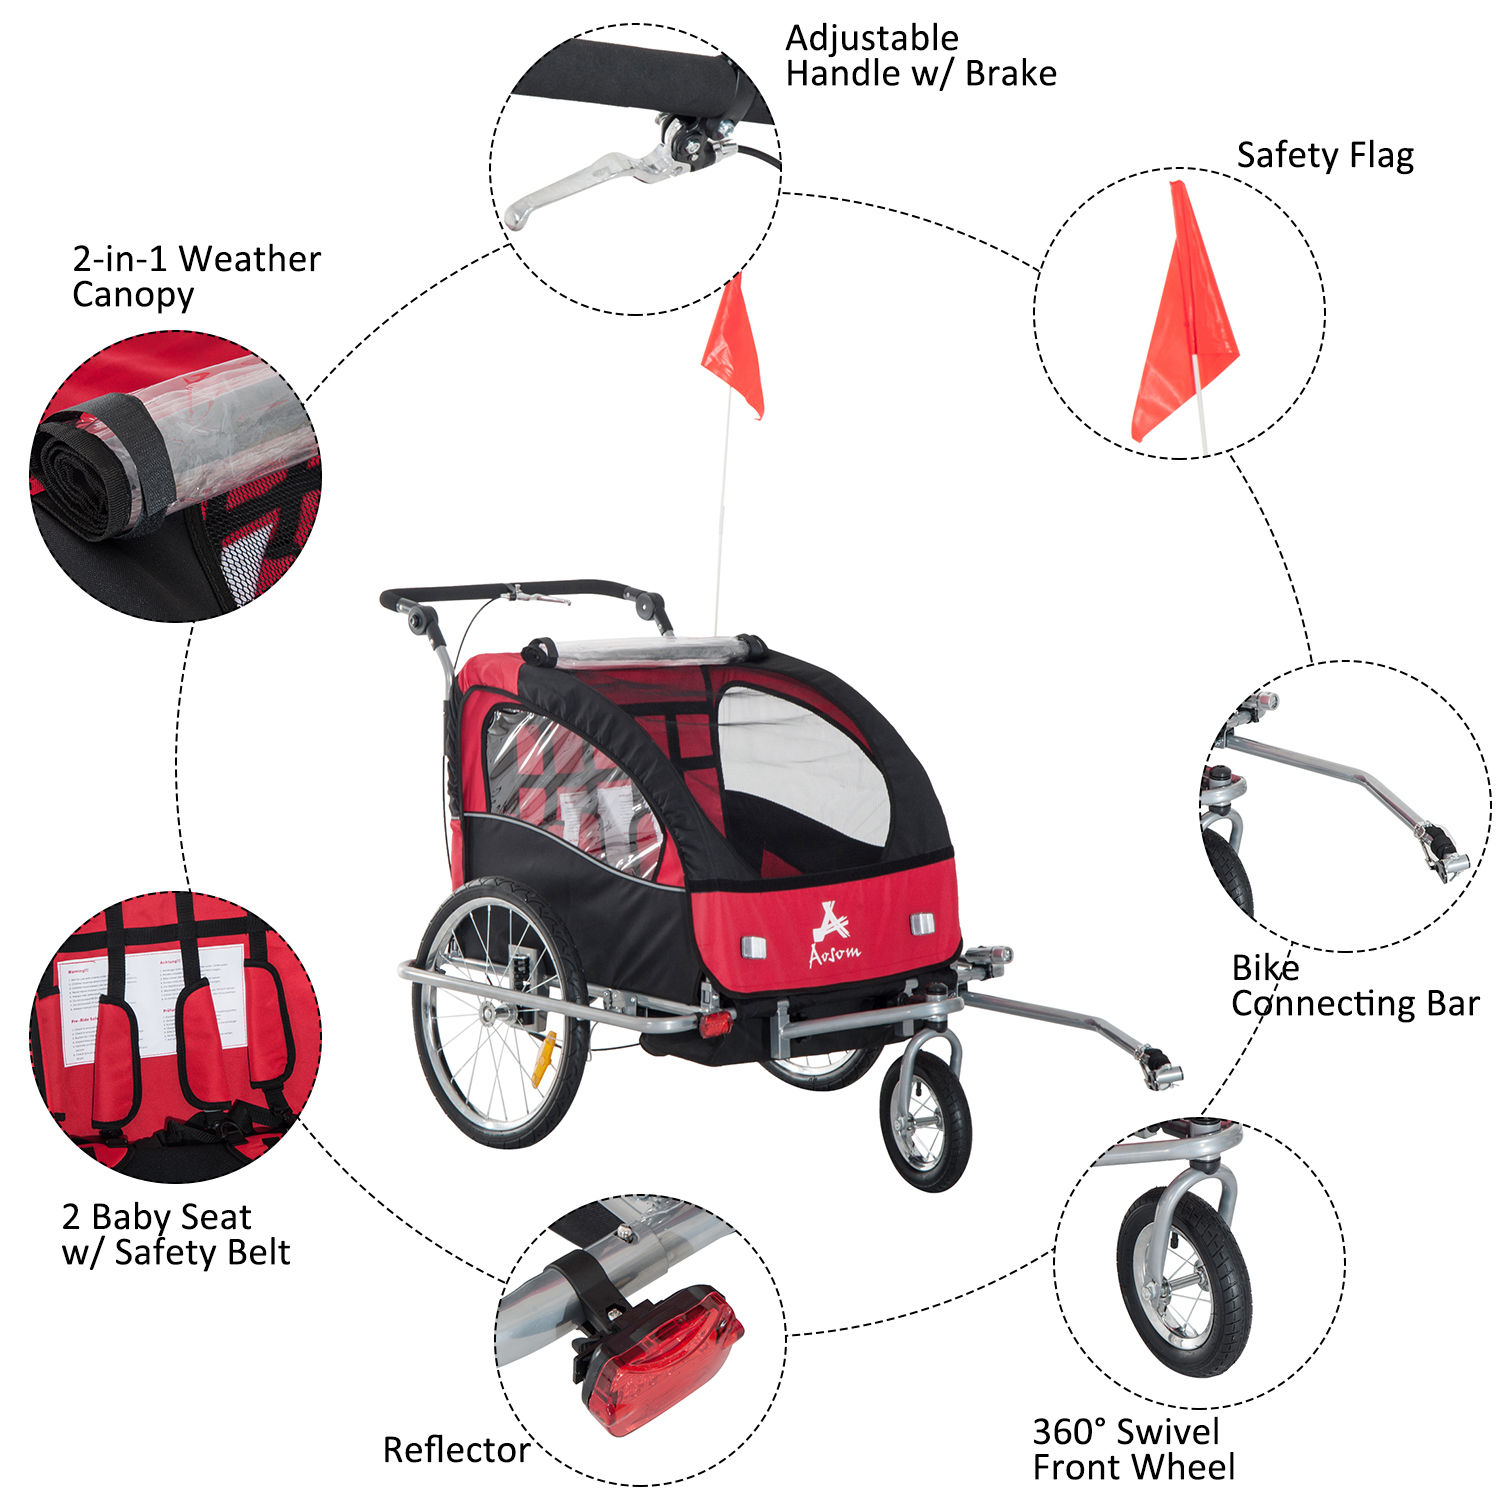 2-Seater-Child-Bike-Trailer-Kids-Carrier-Safety-Harness-Baby-Stroller-Jogger thumbnail 6